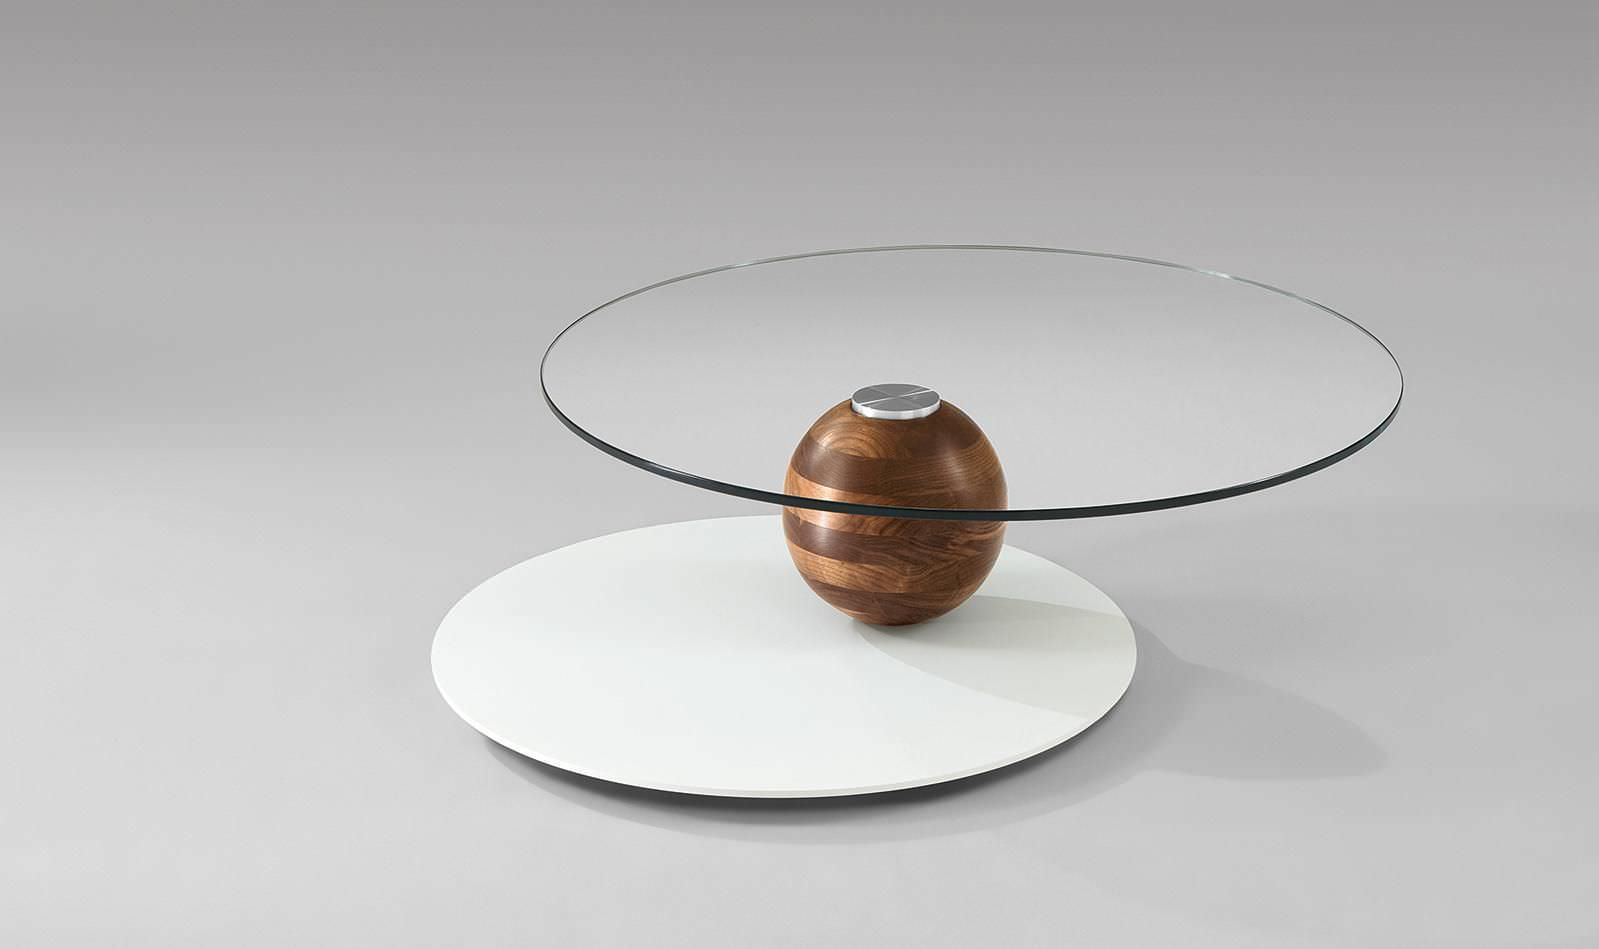 Table Basse Contemporaine En Bois En Verre Ronde 4317